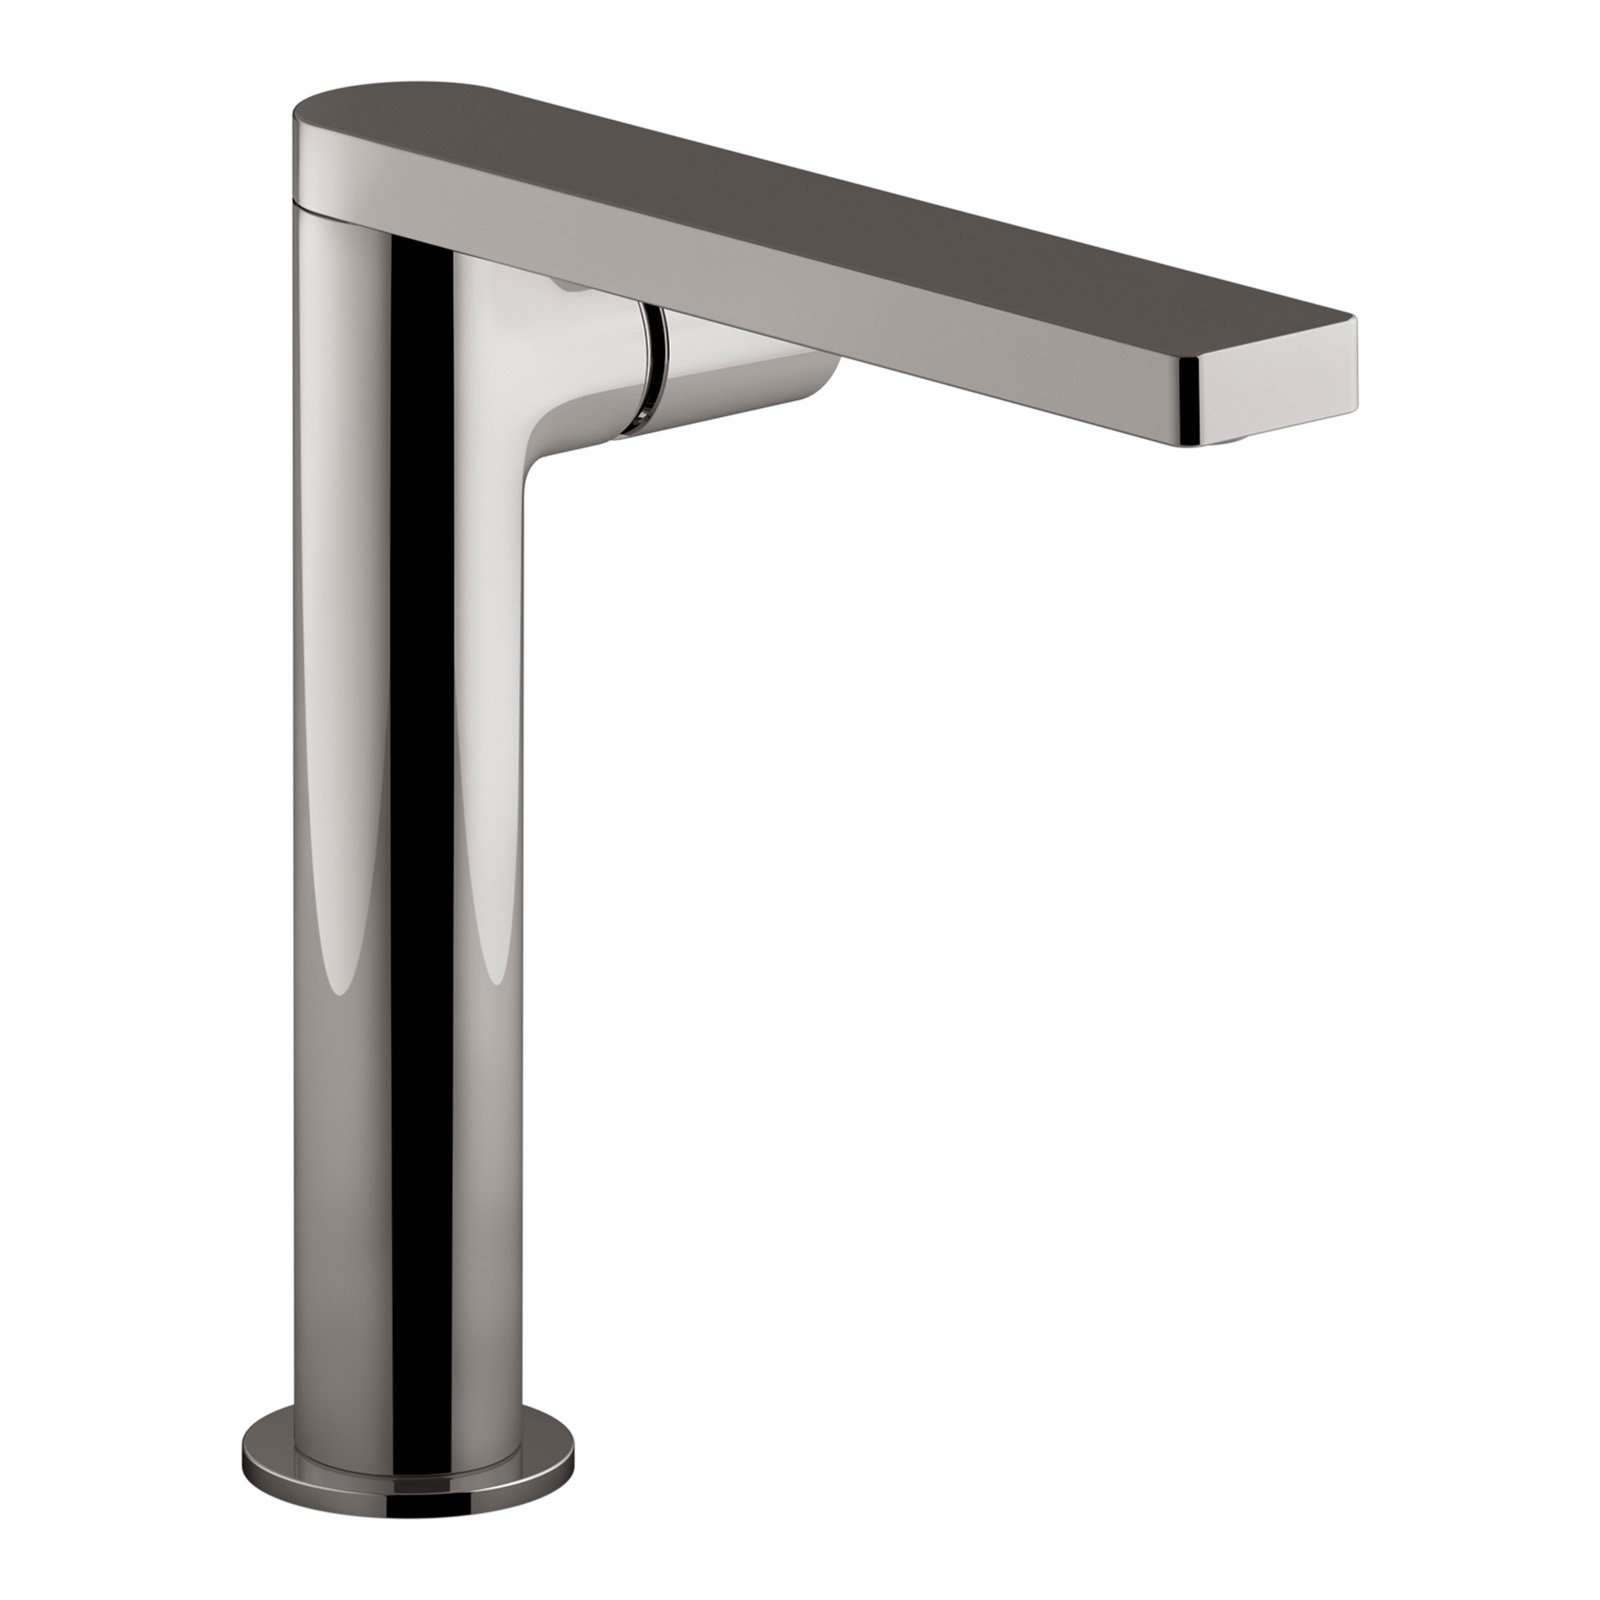 Kohler Composed K73159 7 Single Hole Bathroom Sink Faucet